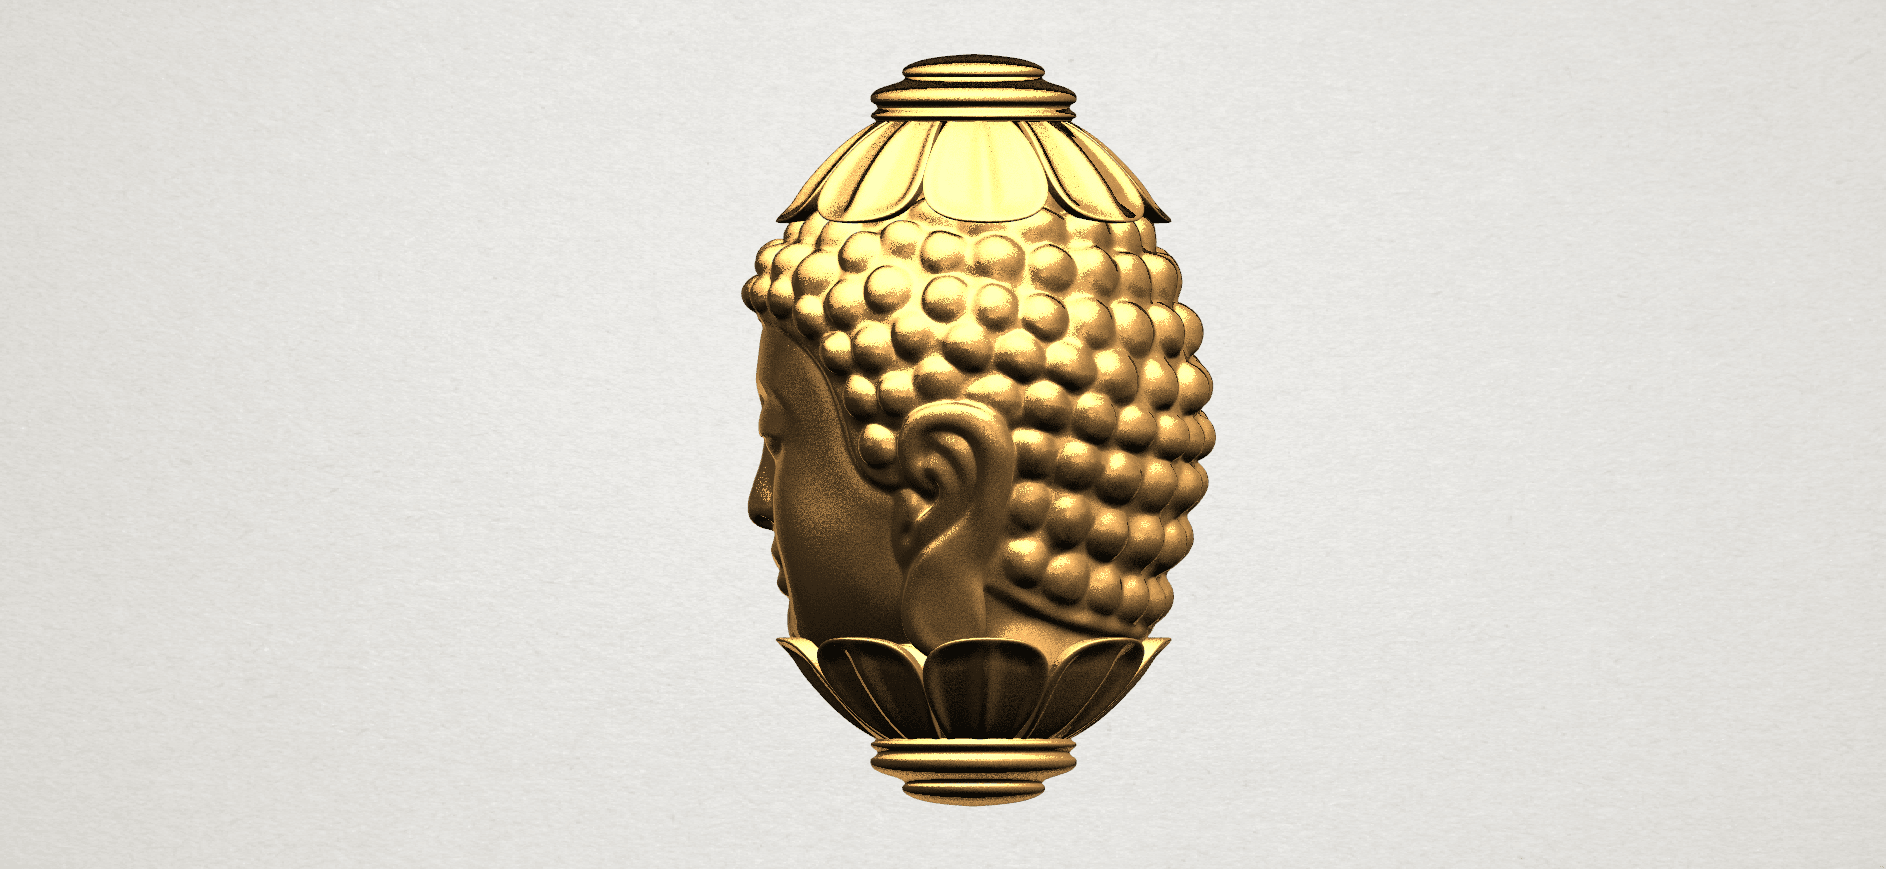 Buddha - Head Sculpture 80mm -A04.png Download free STL file Buddha - Head Sculpture • 3D printing model, GeorgesNikkei